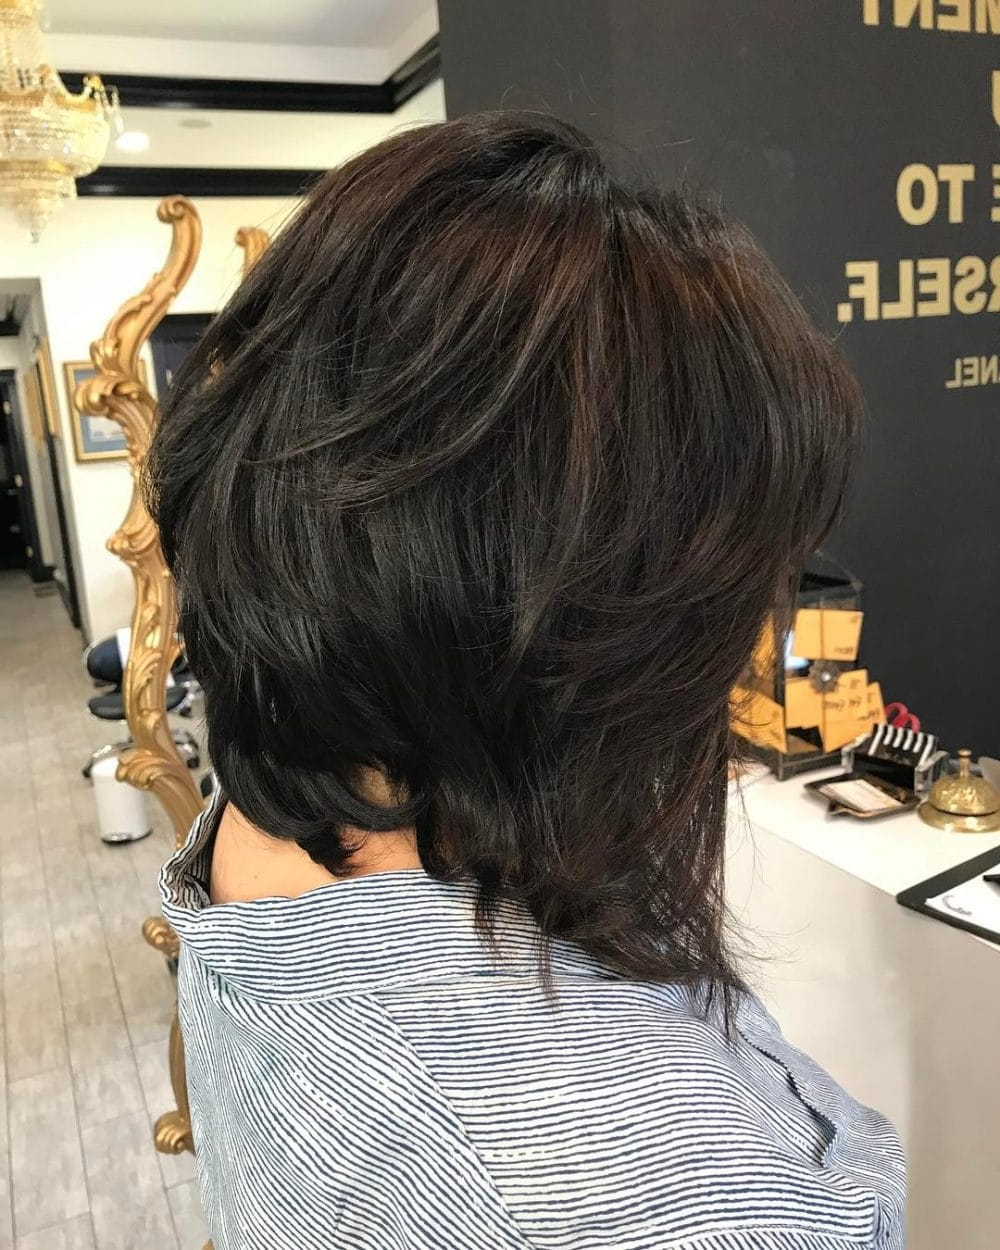 26 Modern Shag Haircuts To Try In 2019 Regarding Matte Shaggy Bob Hairstyles (View 5 of 20)